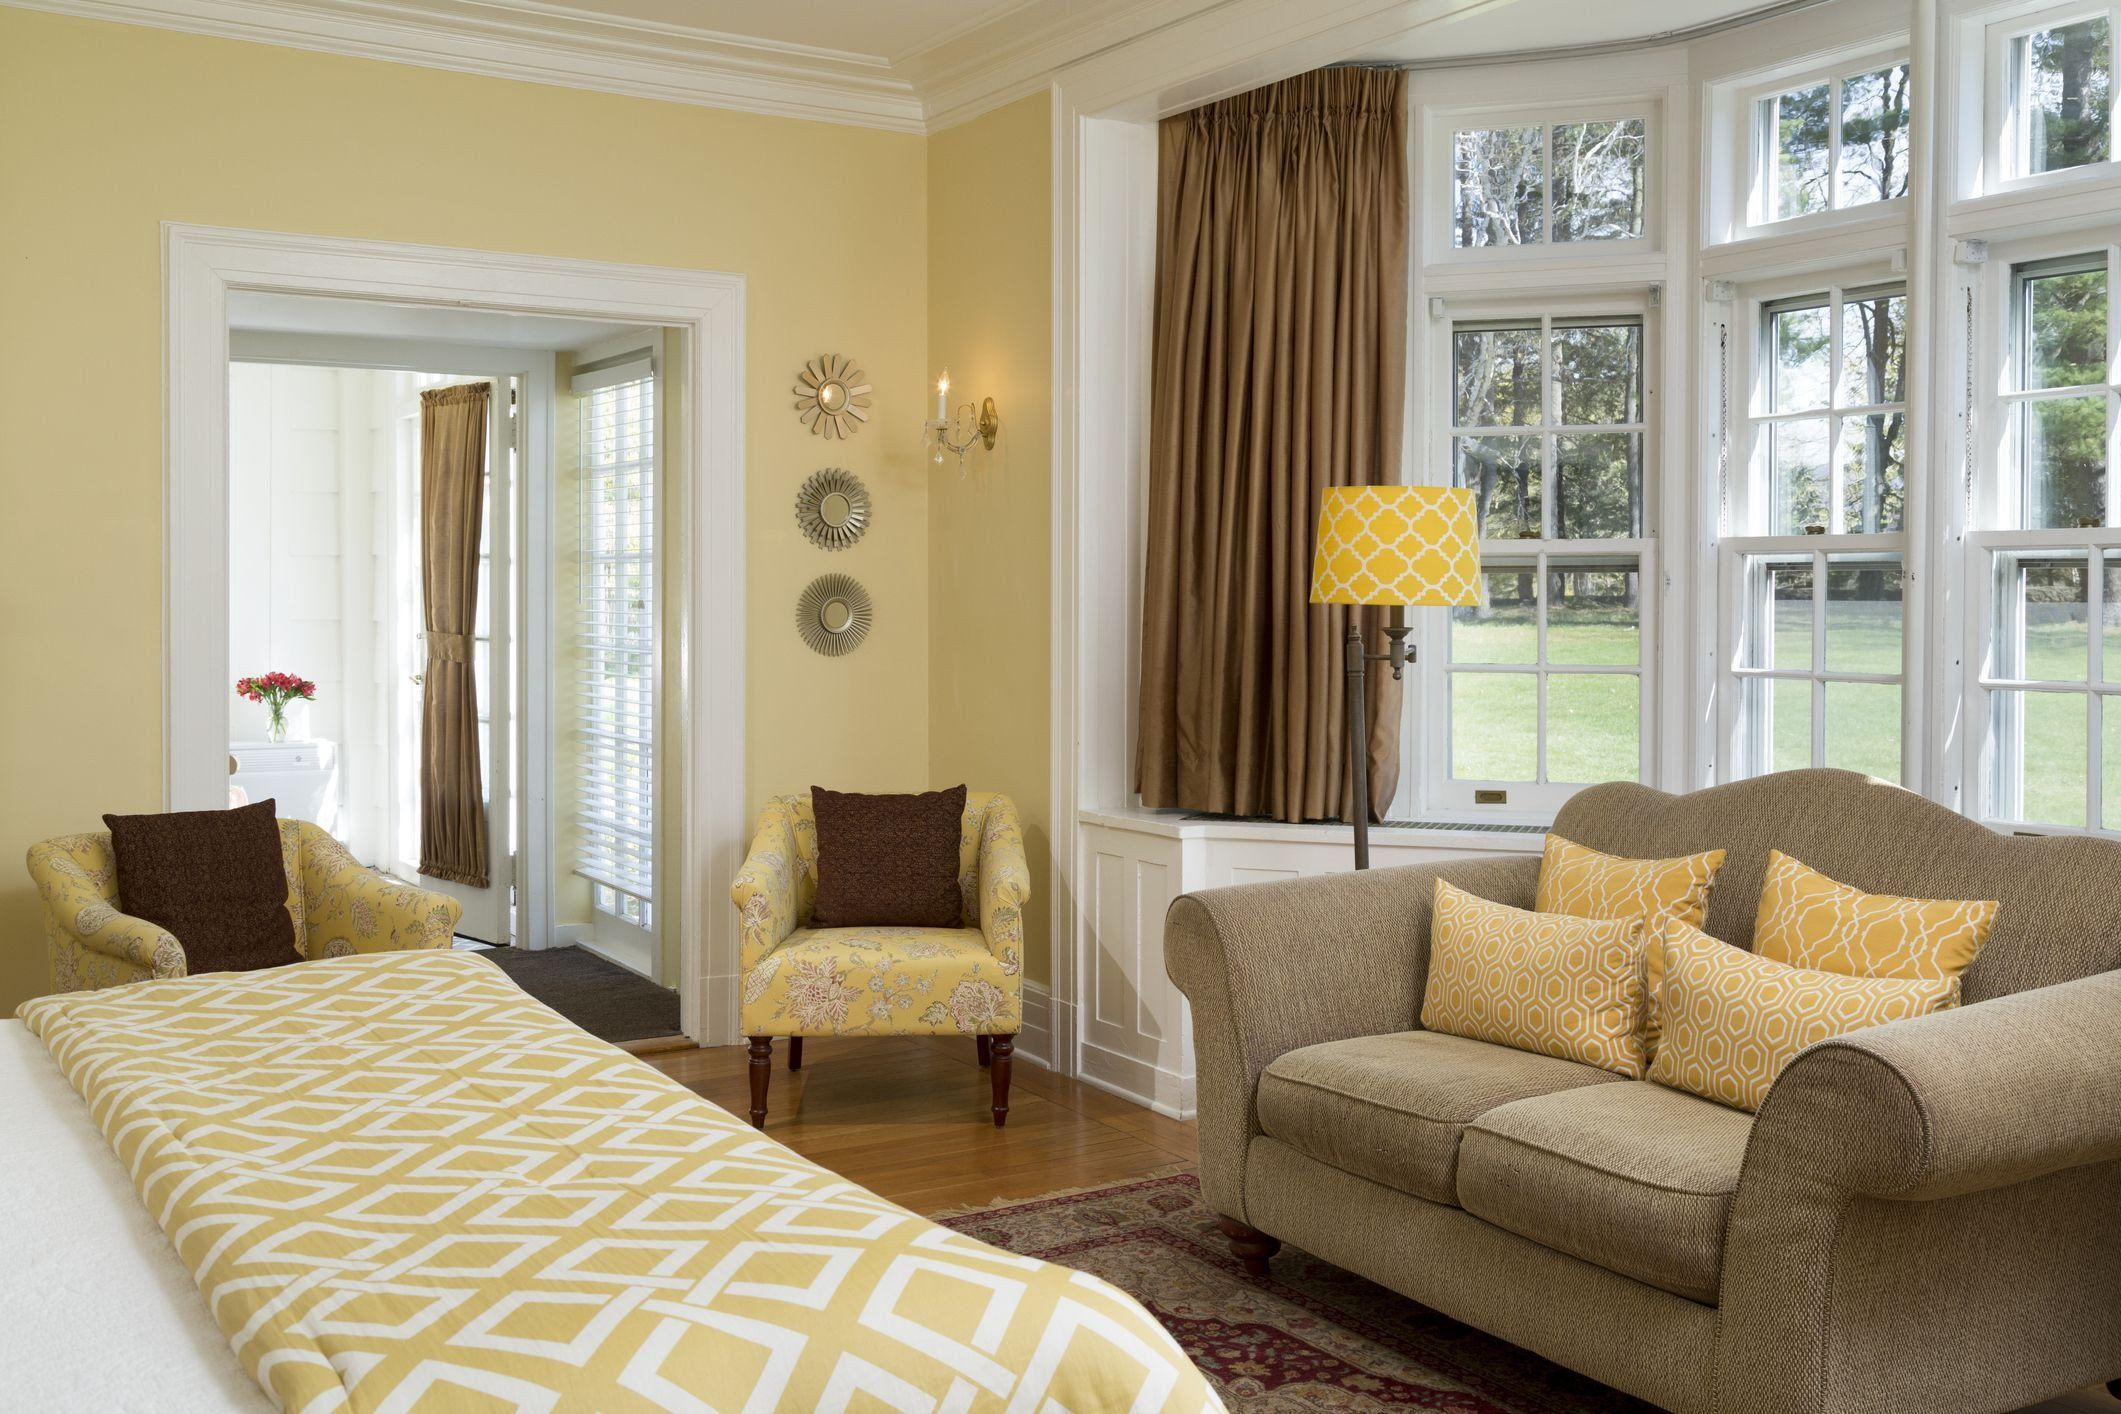 Yellow Decorations for Living Room Feng Shui House Decor